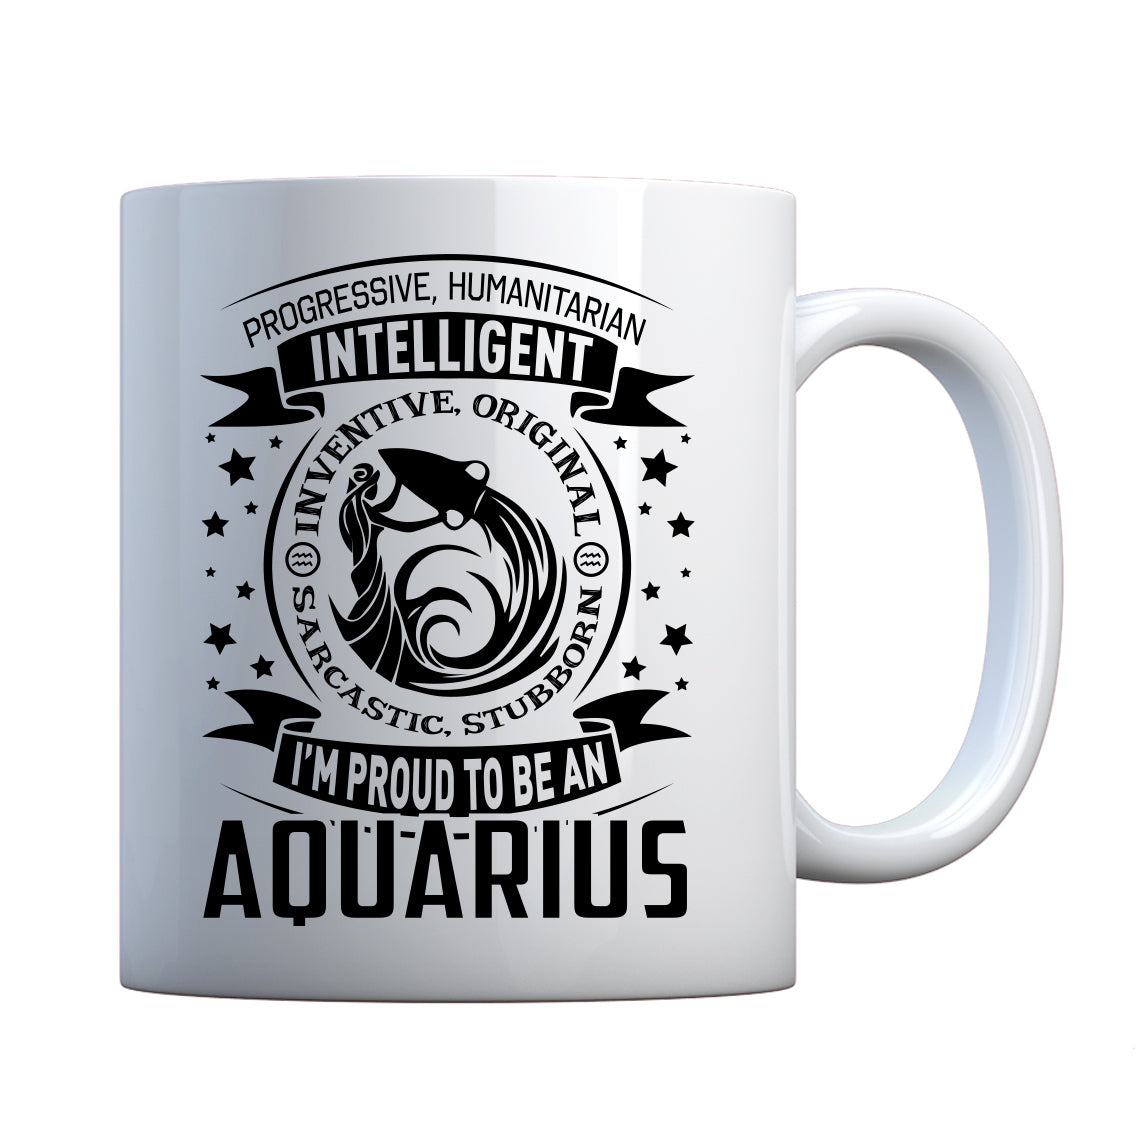 Mug Aquarius Astrology Zodiac Sign Ceramic Gift Mug